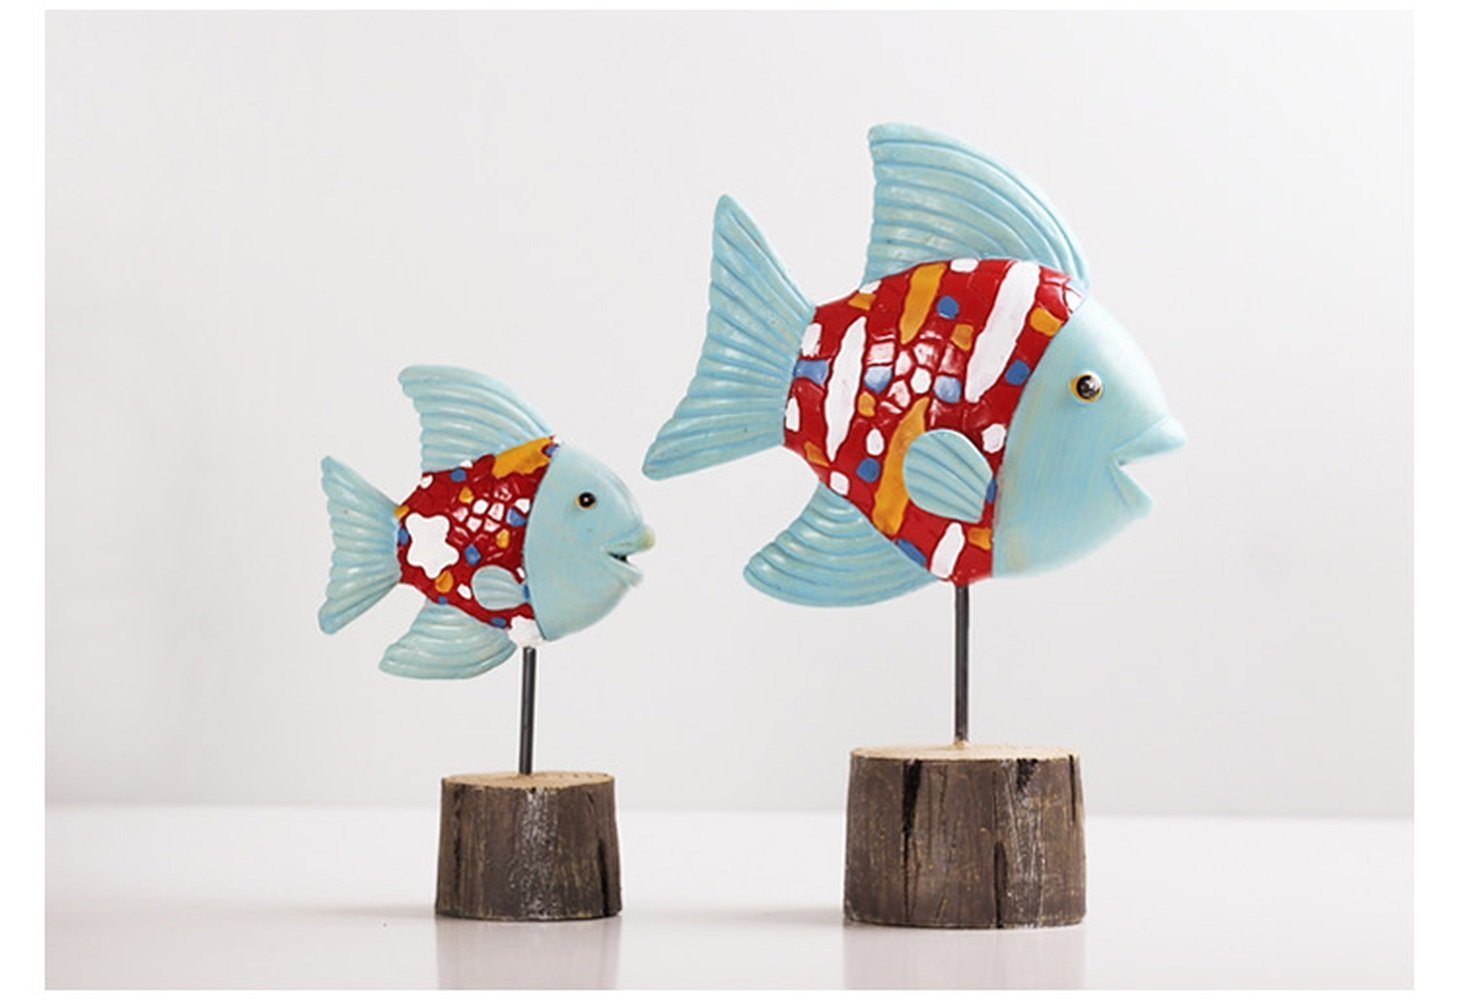 Bwlzsp 1 pair Nordic decorative fish lucky ornaments simple modern TV cabinet wine cabinet living room table home technology LU716441 (Color : Red)